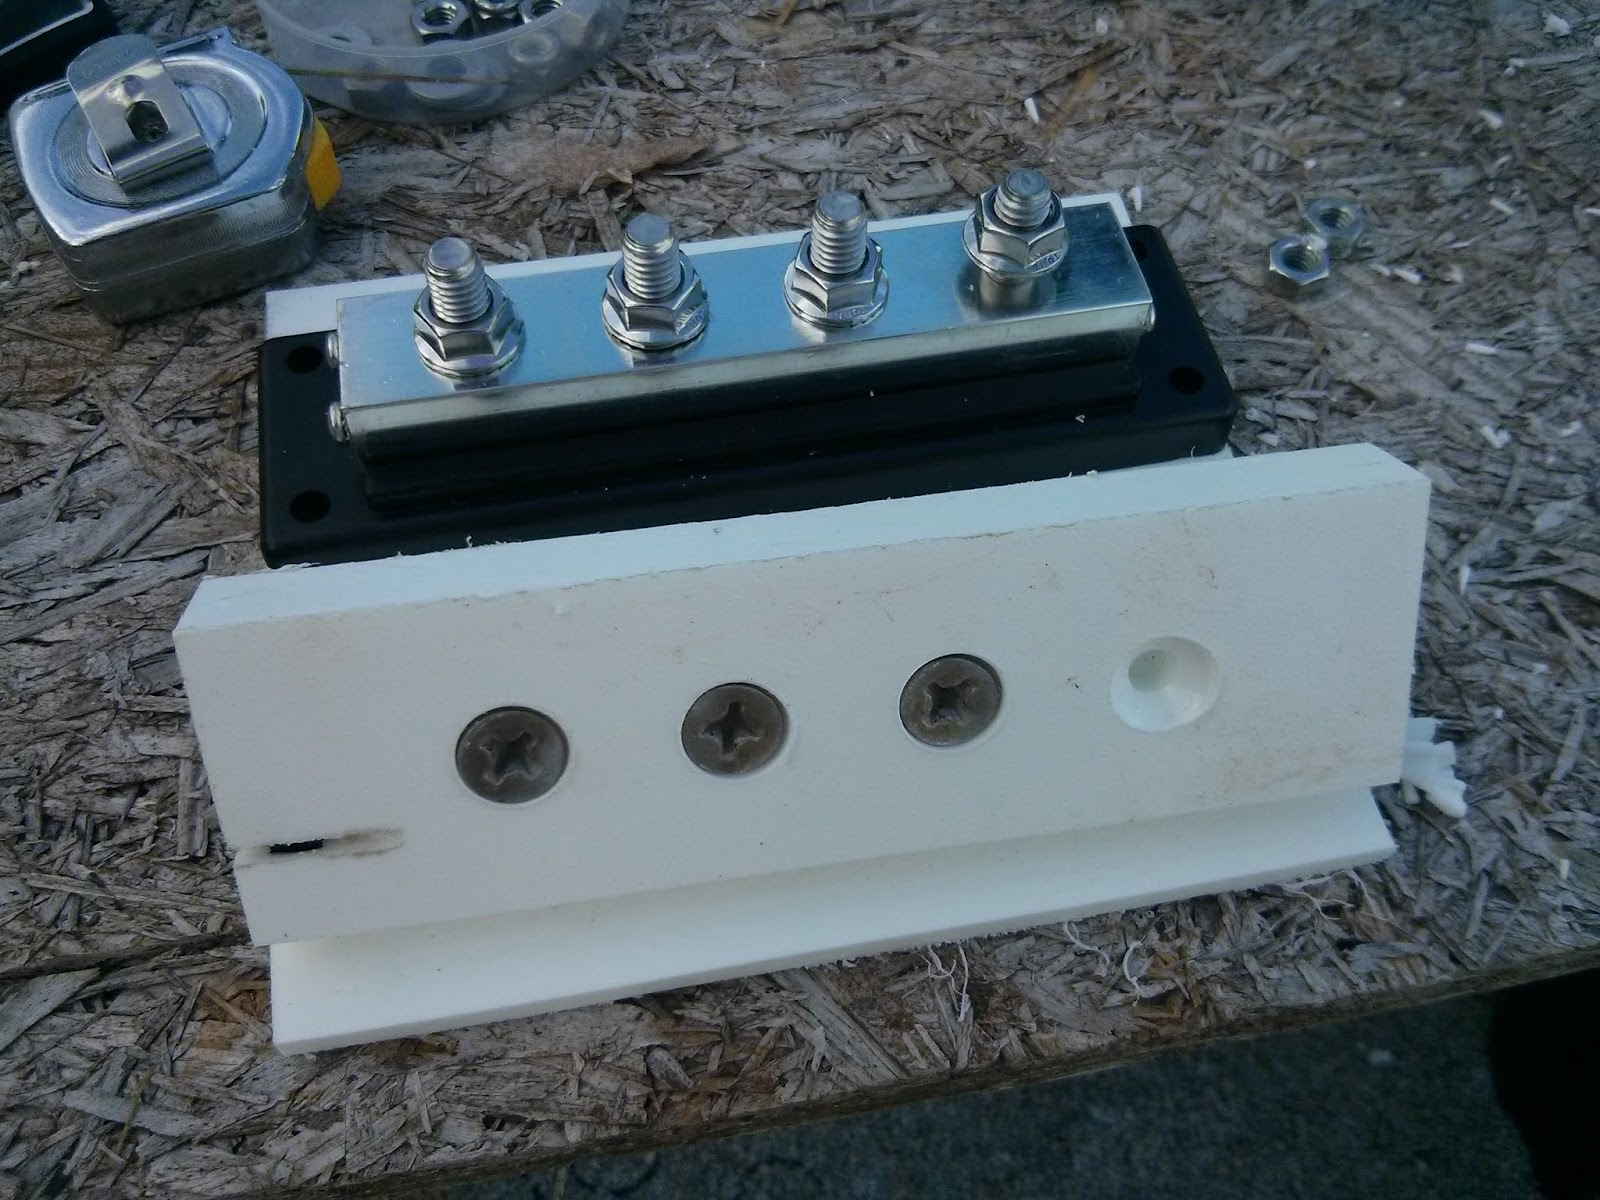 hight resolution of wrg 8370 homemade fuse box for boathomemade fuse box for boat